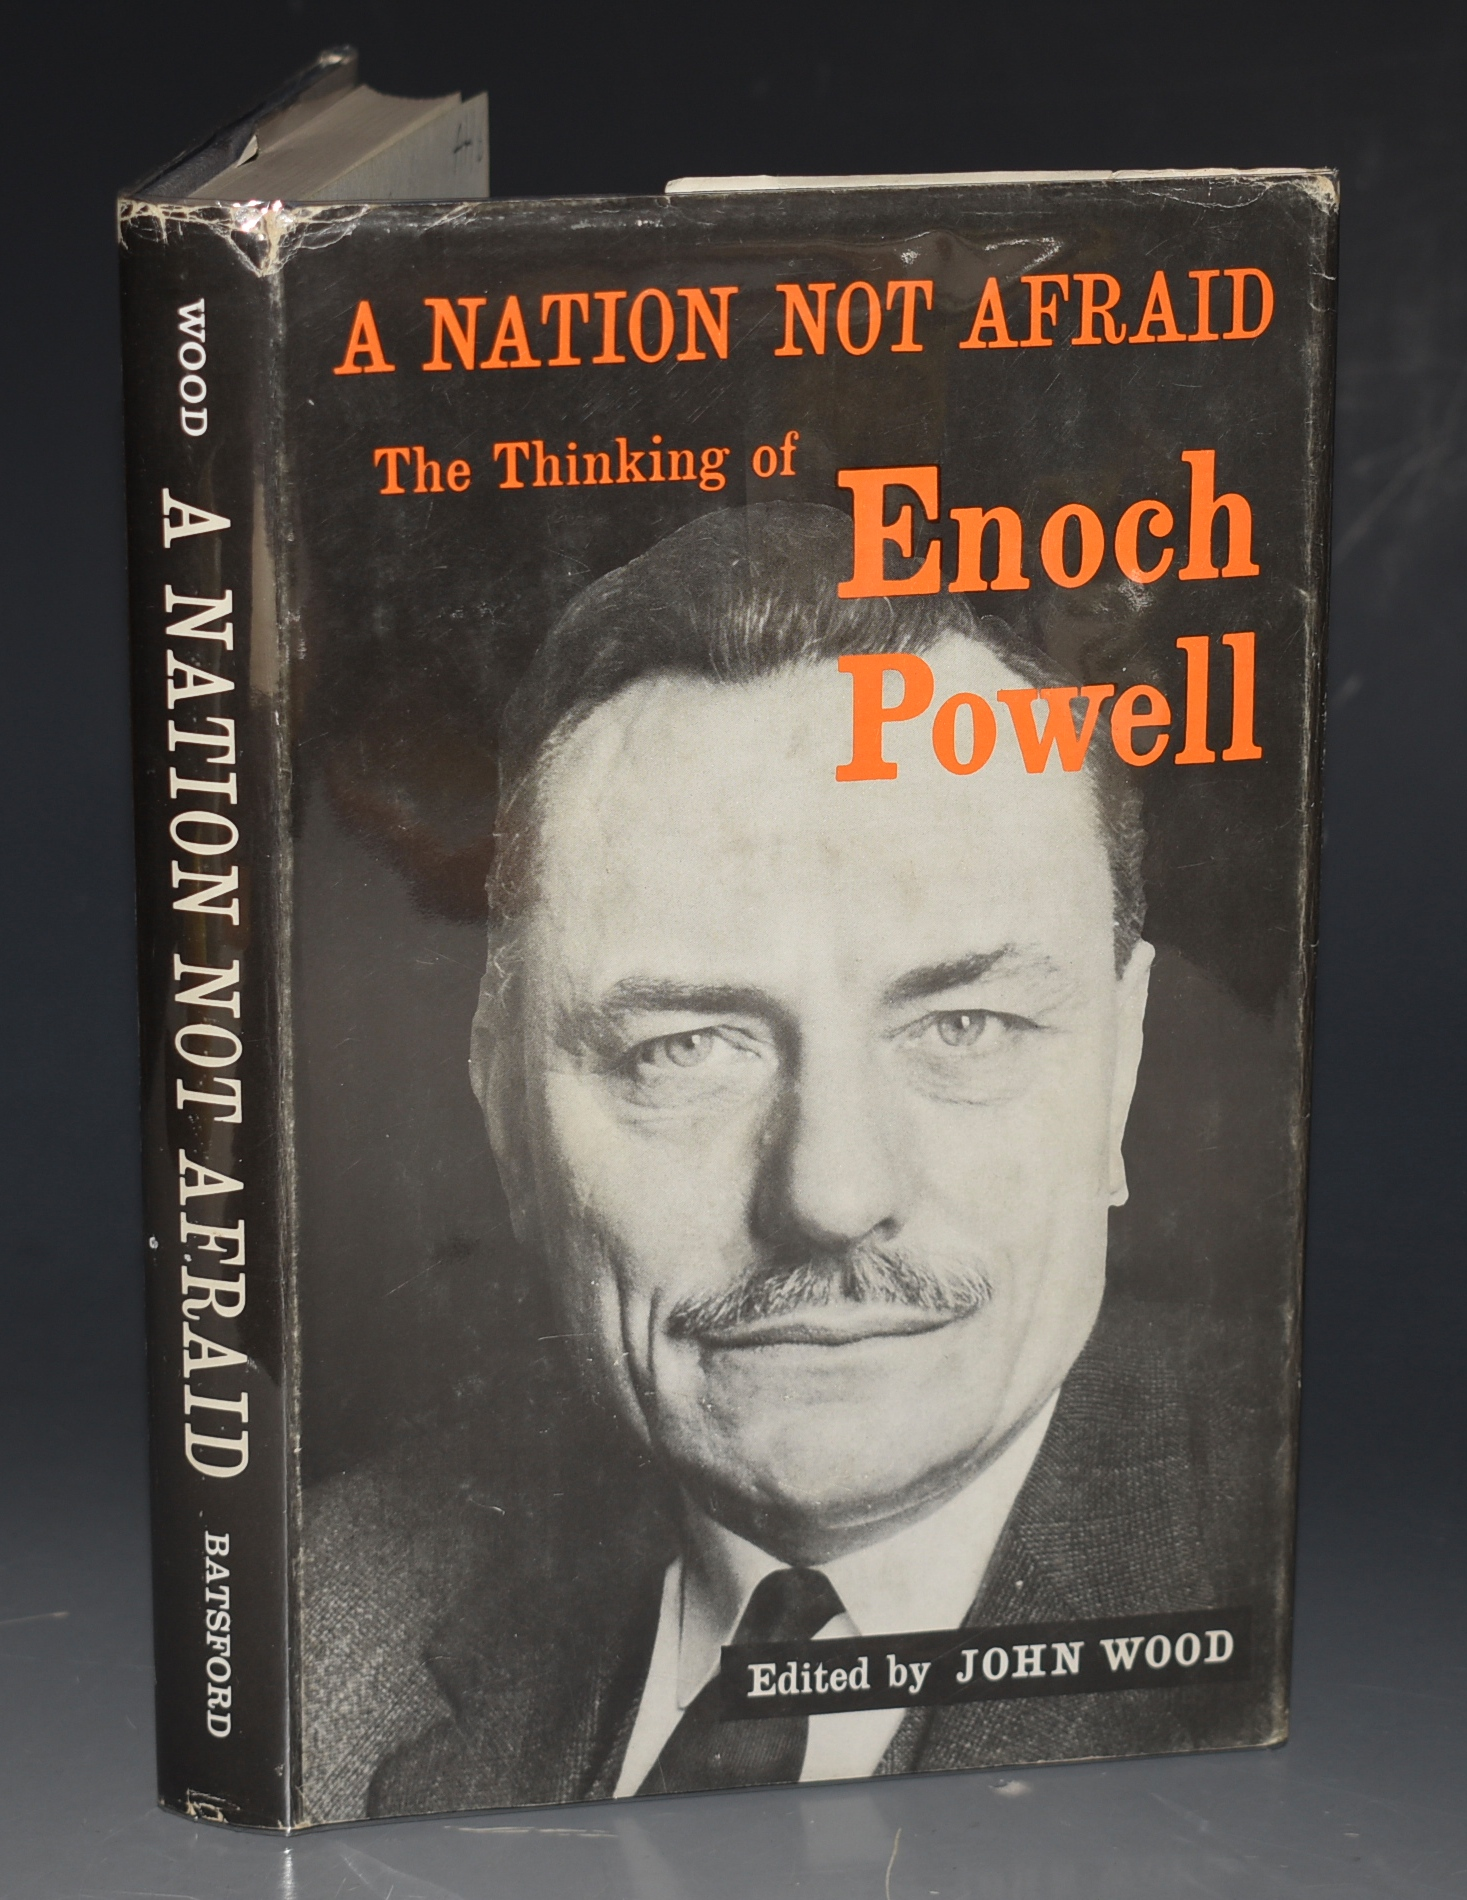 Image for A Nation Not Afraid The Thinking of Enoch Powell. Edited by John Wood.